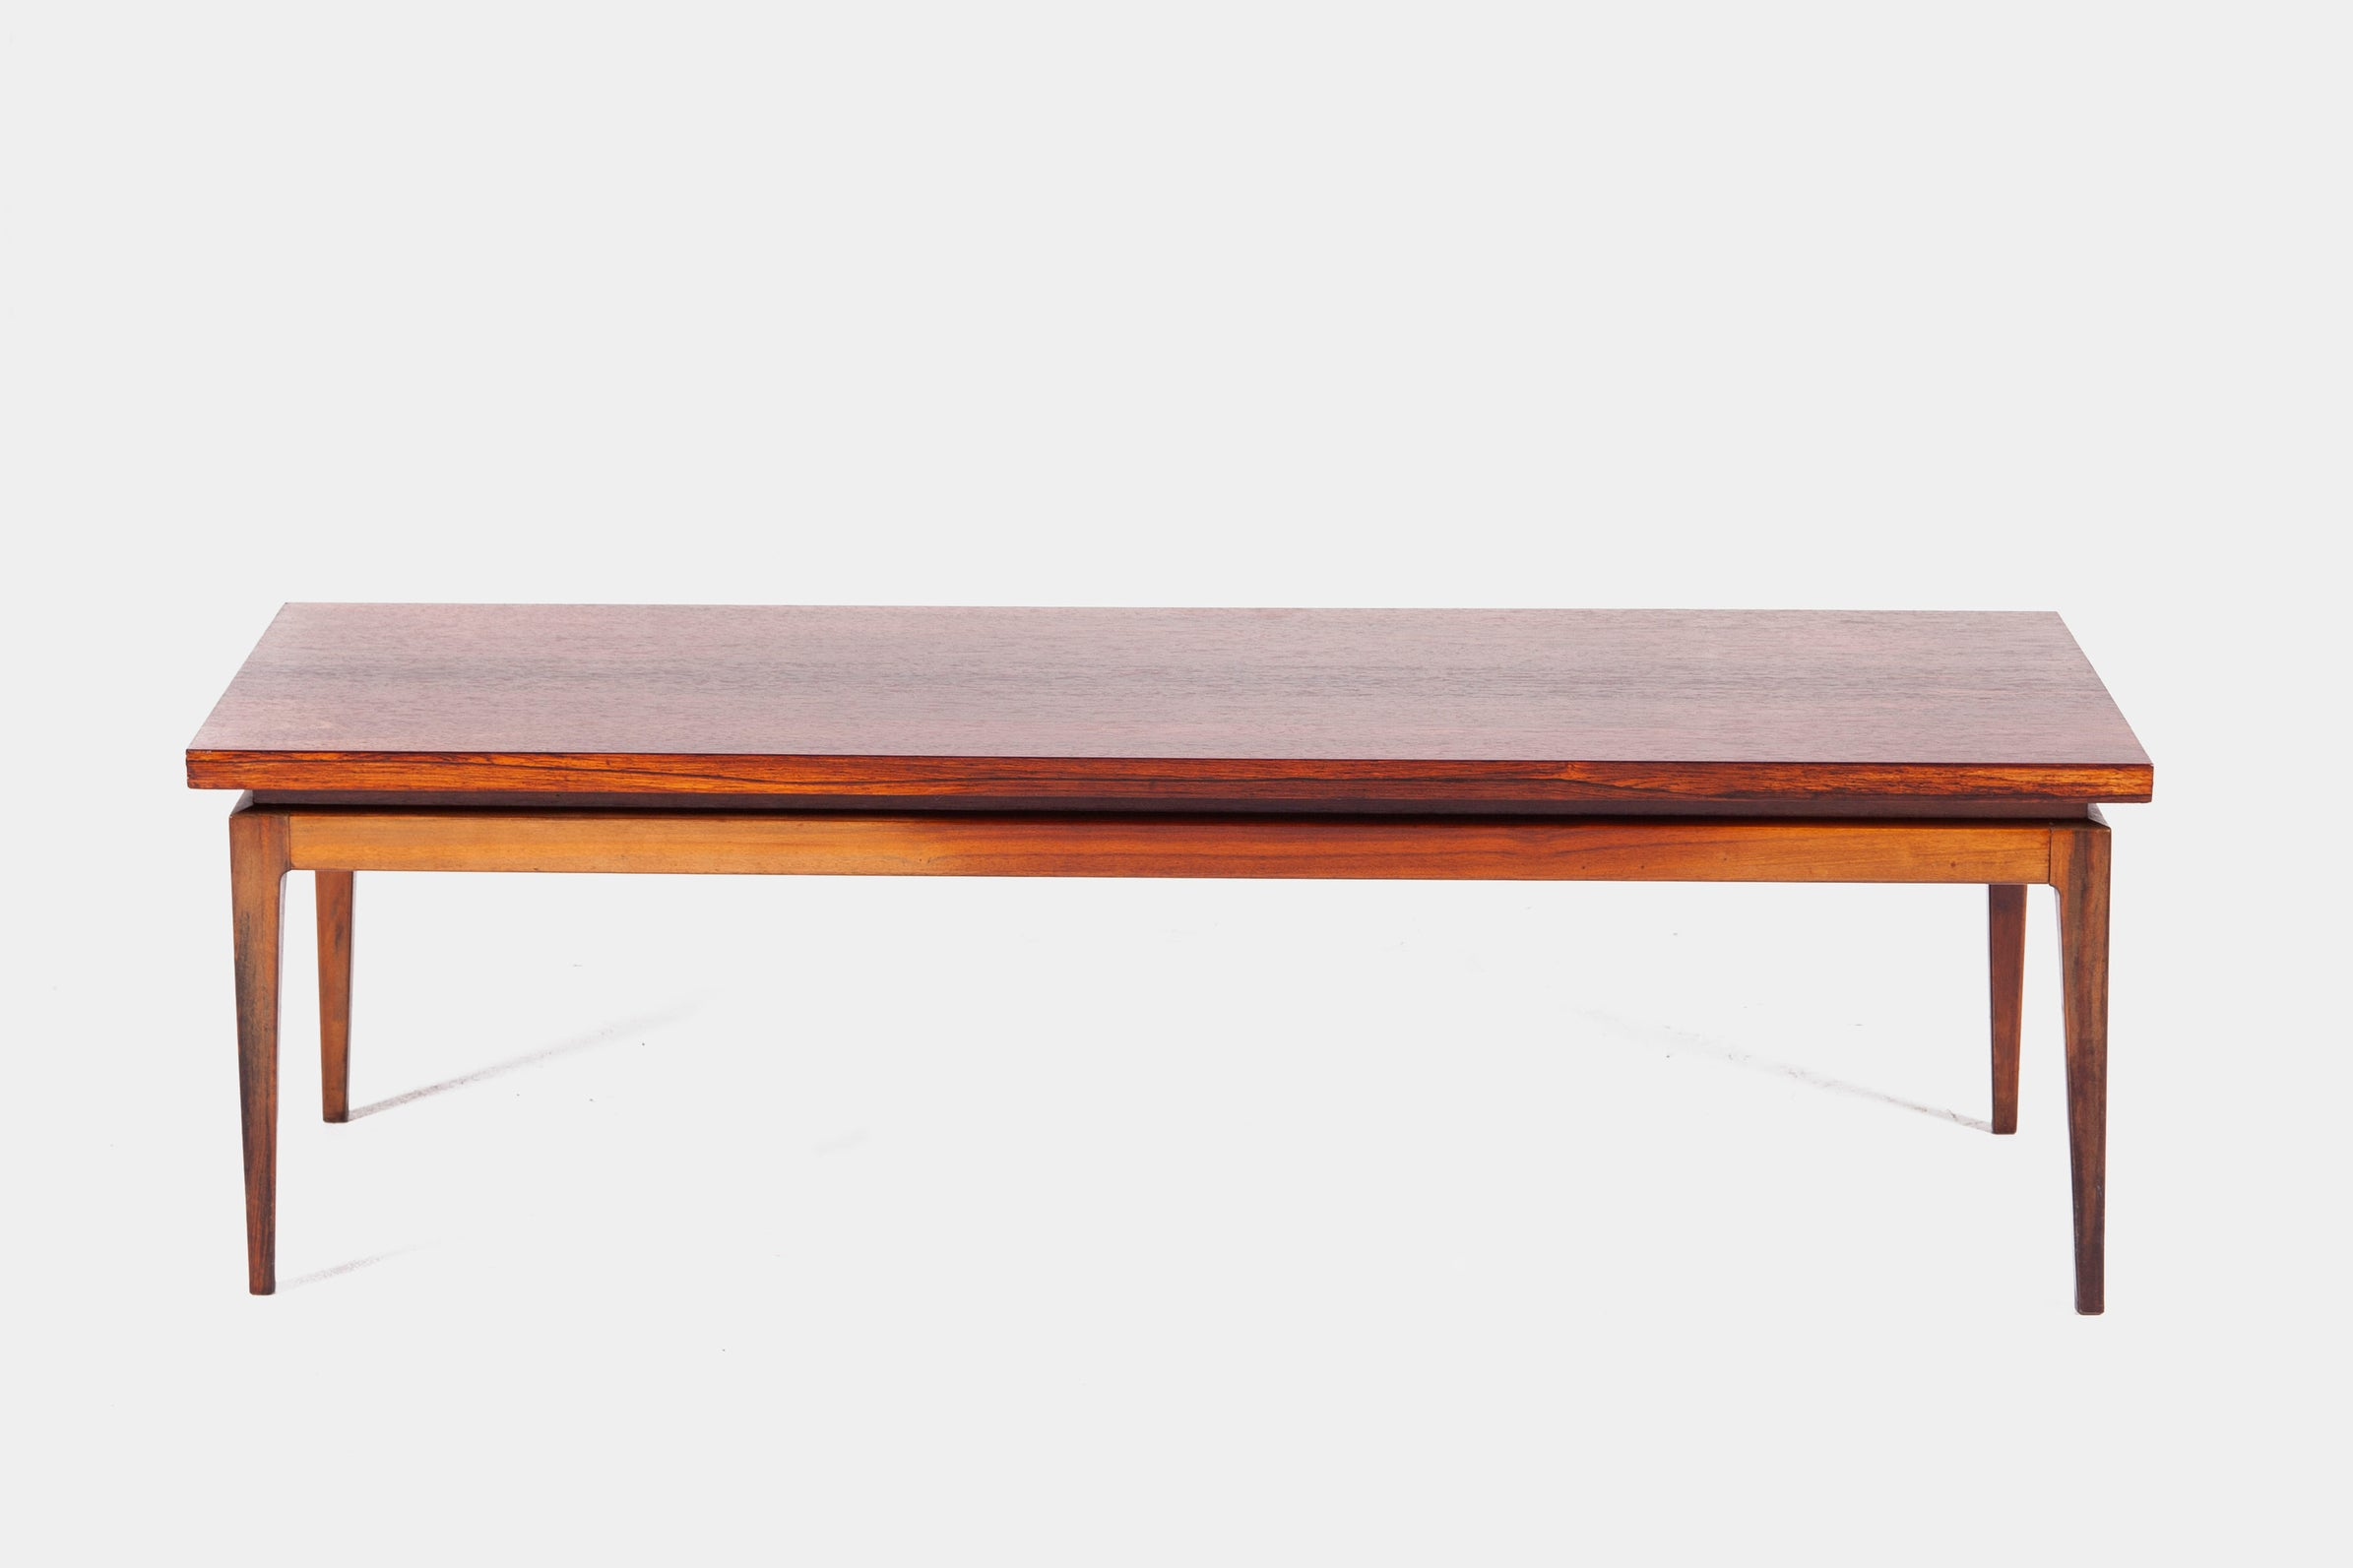 Scandinavian Design Coffee Table by Henning Kjaernulf for Velje Mobelfabrik